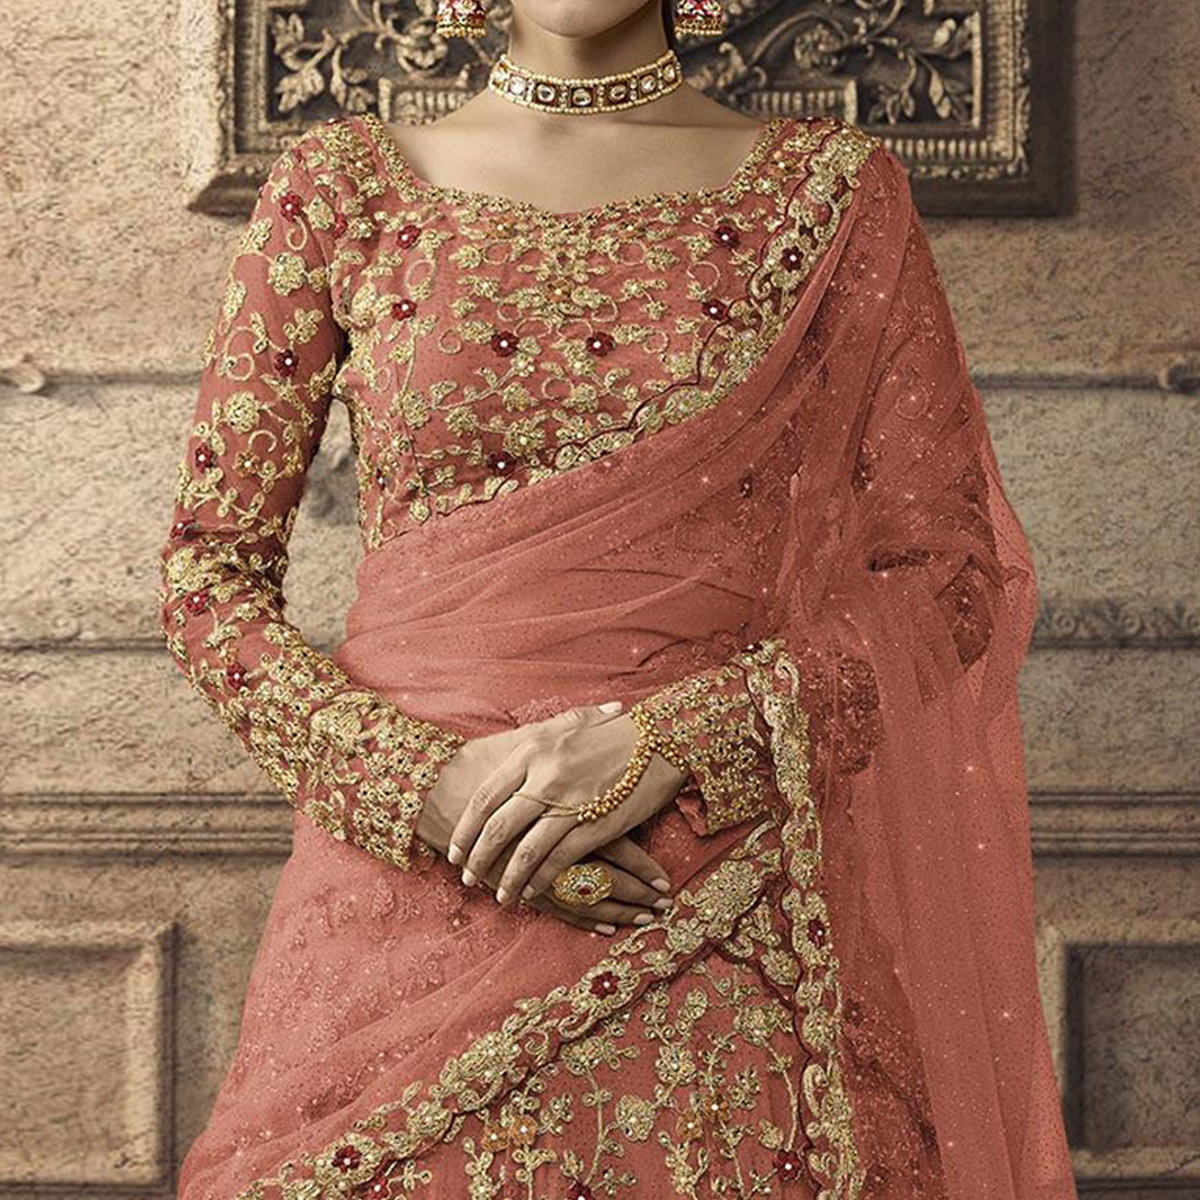 Glorious Peach Colored Partywear Embroidered Net Lehenga Choli